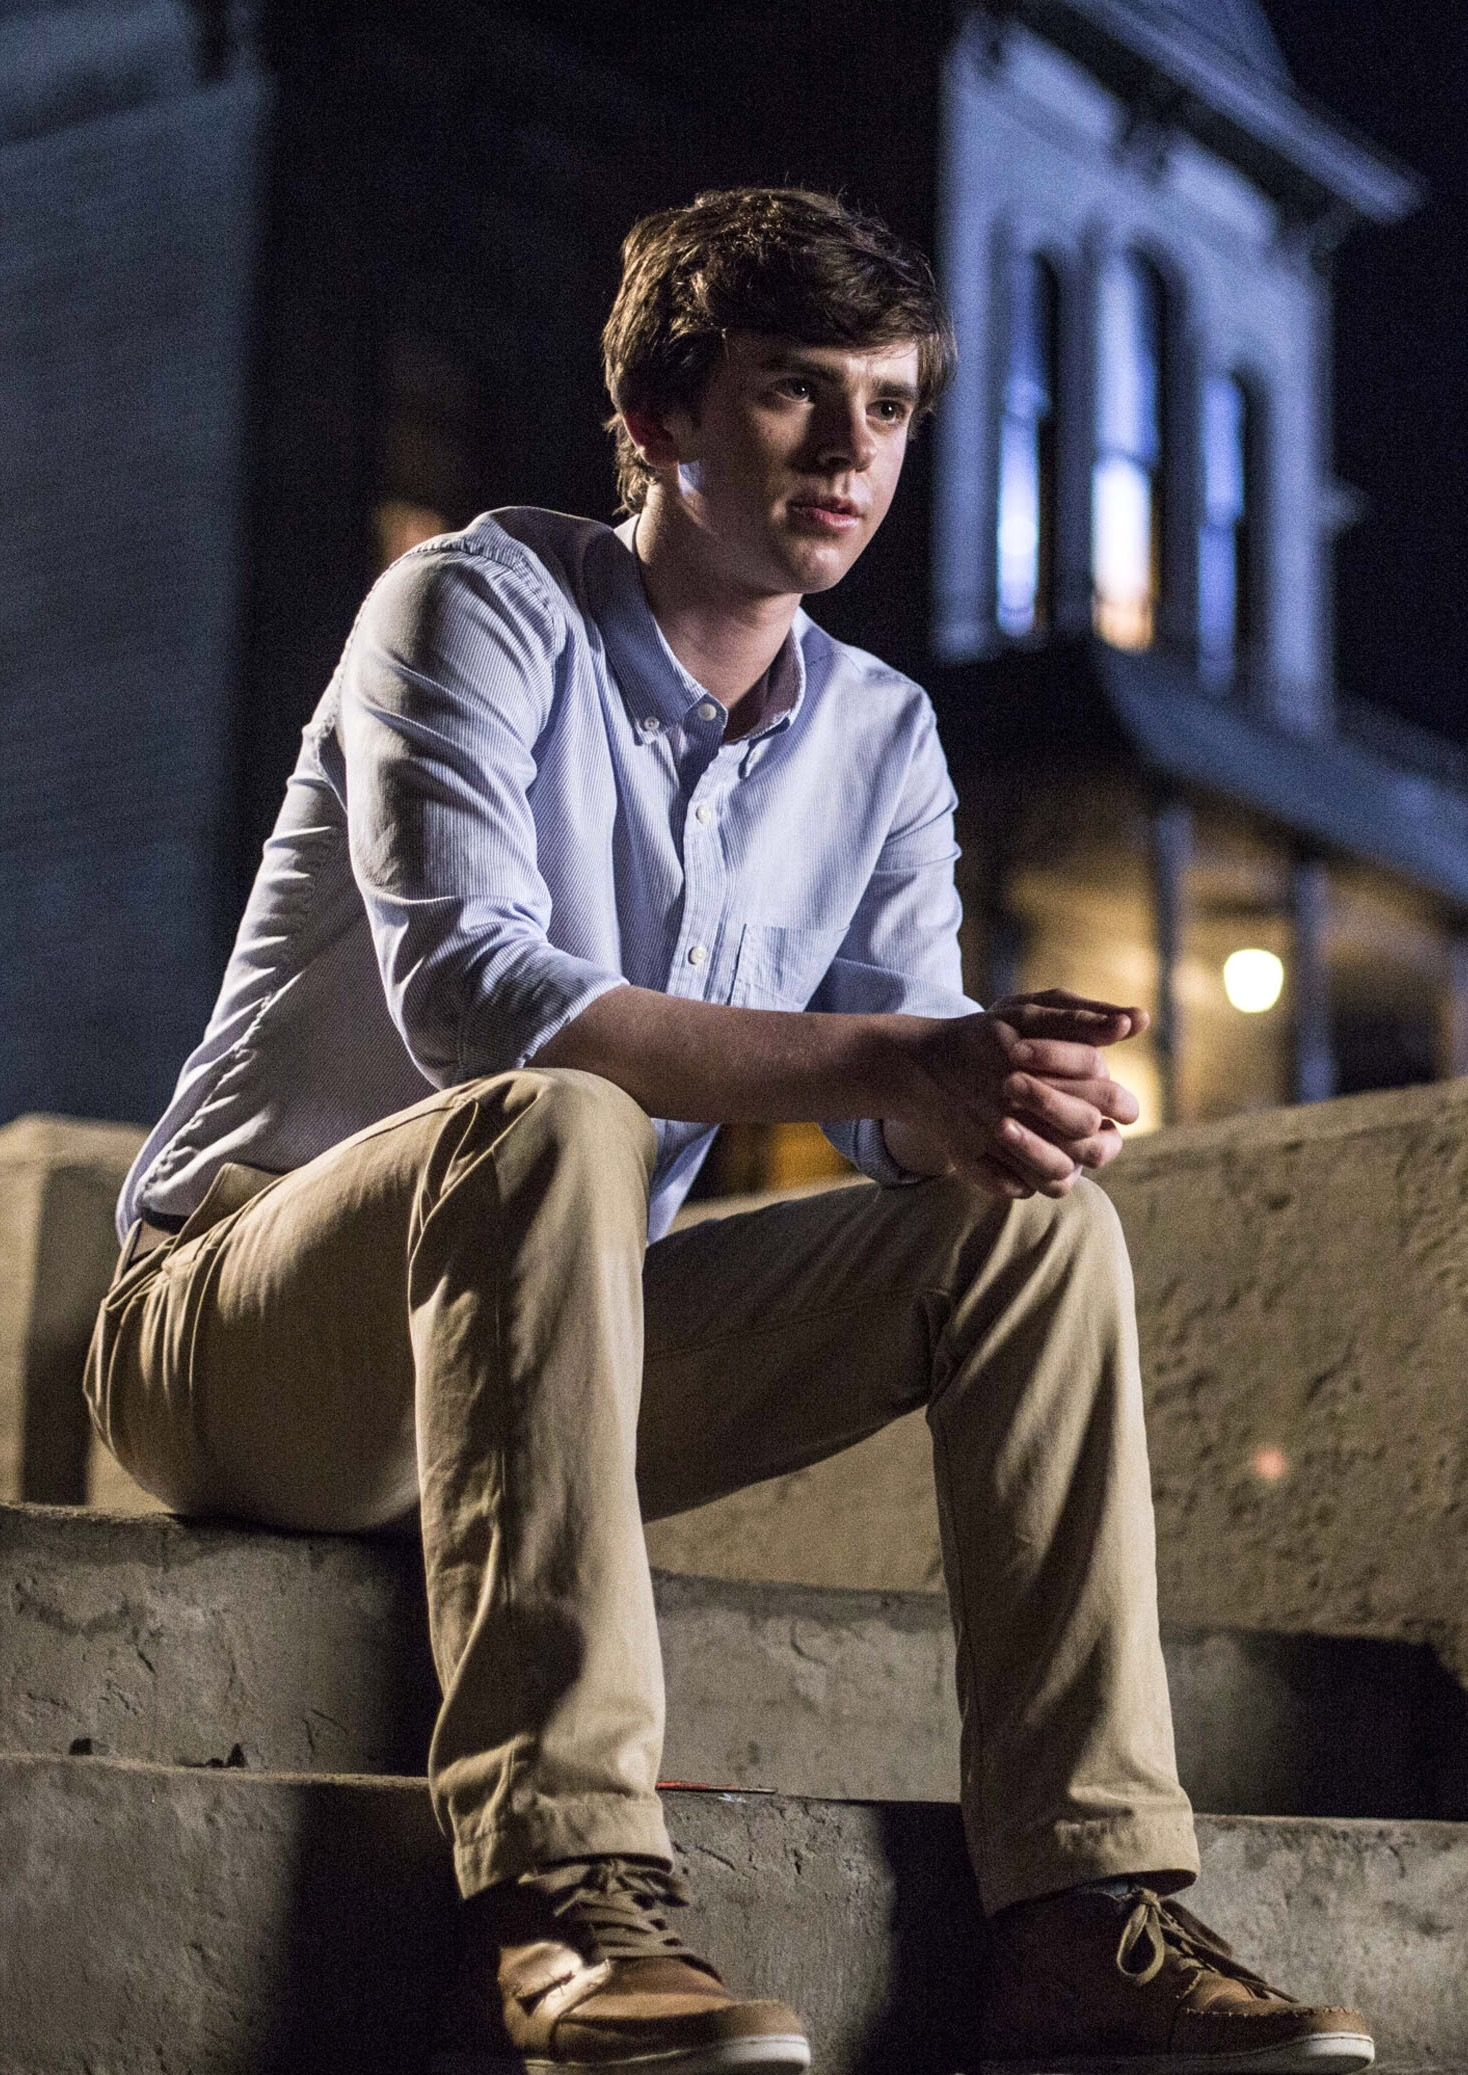 Freddie highmore as norman bates motel hehe for Freddie highmore movies and tv shows